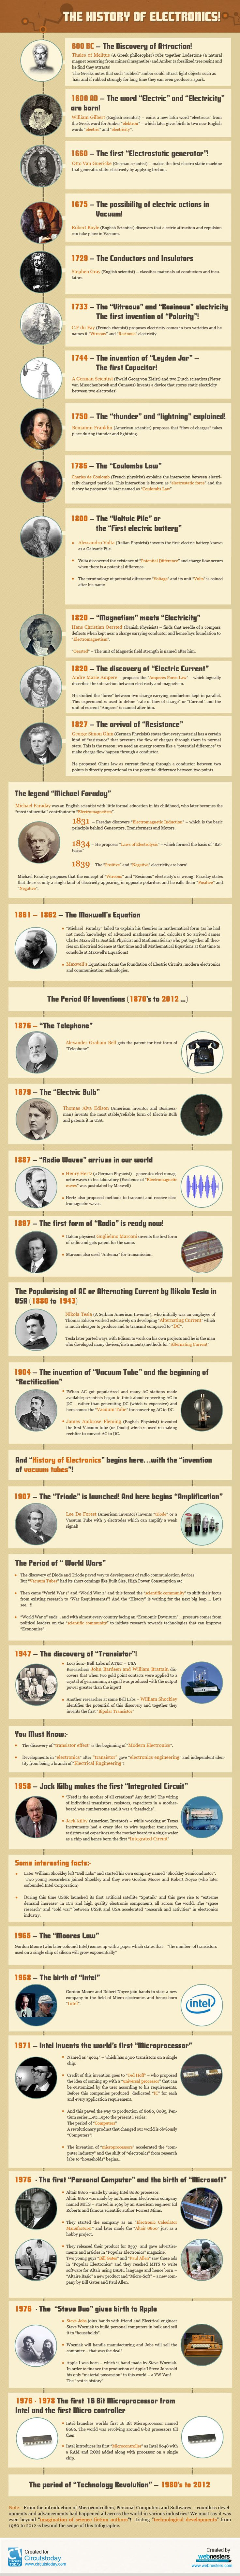 History of electronics || For Audio Video Repair in Montreal call us (514) 767-9585